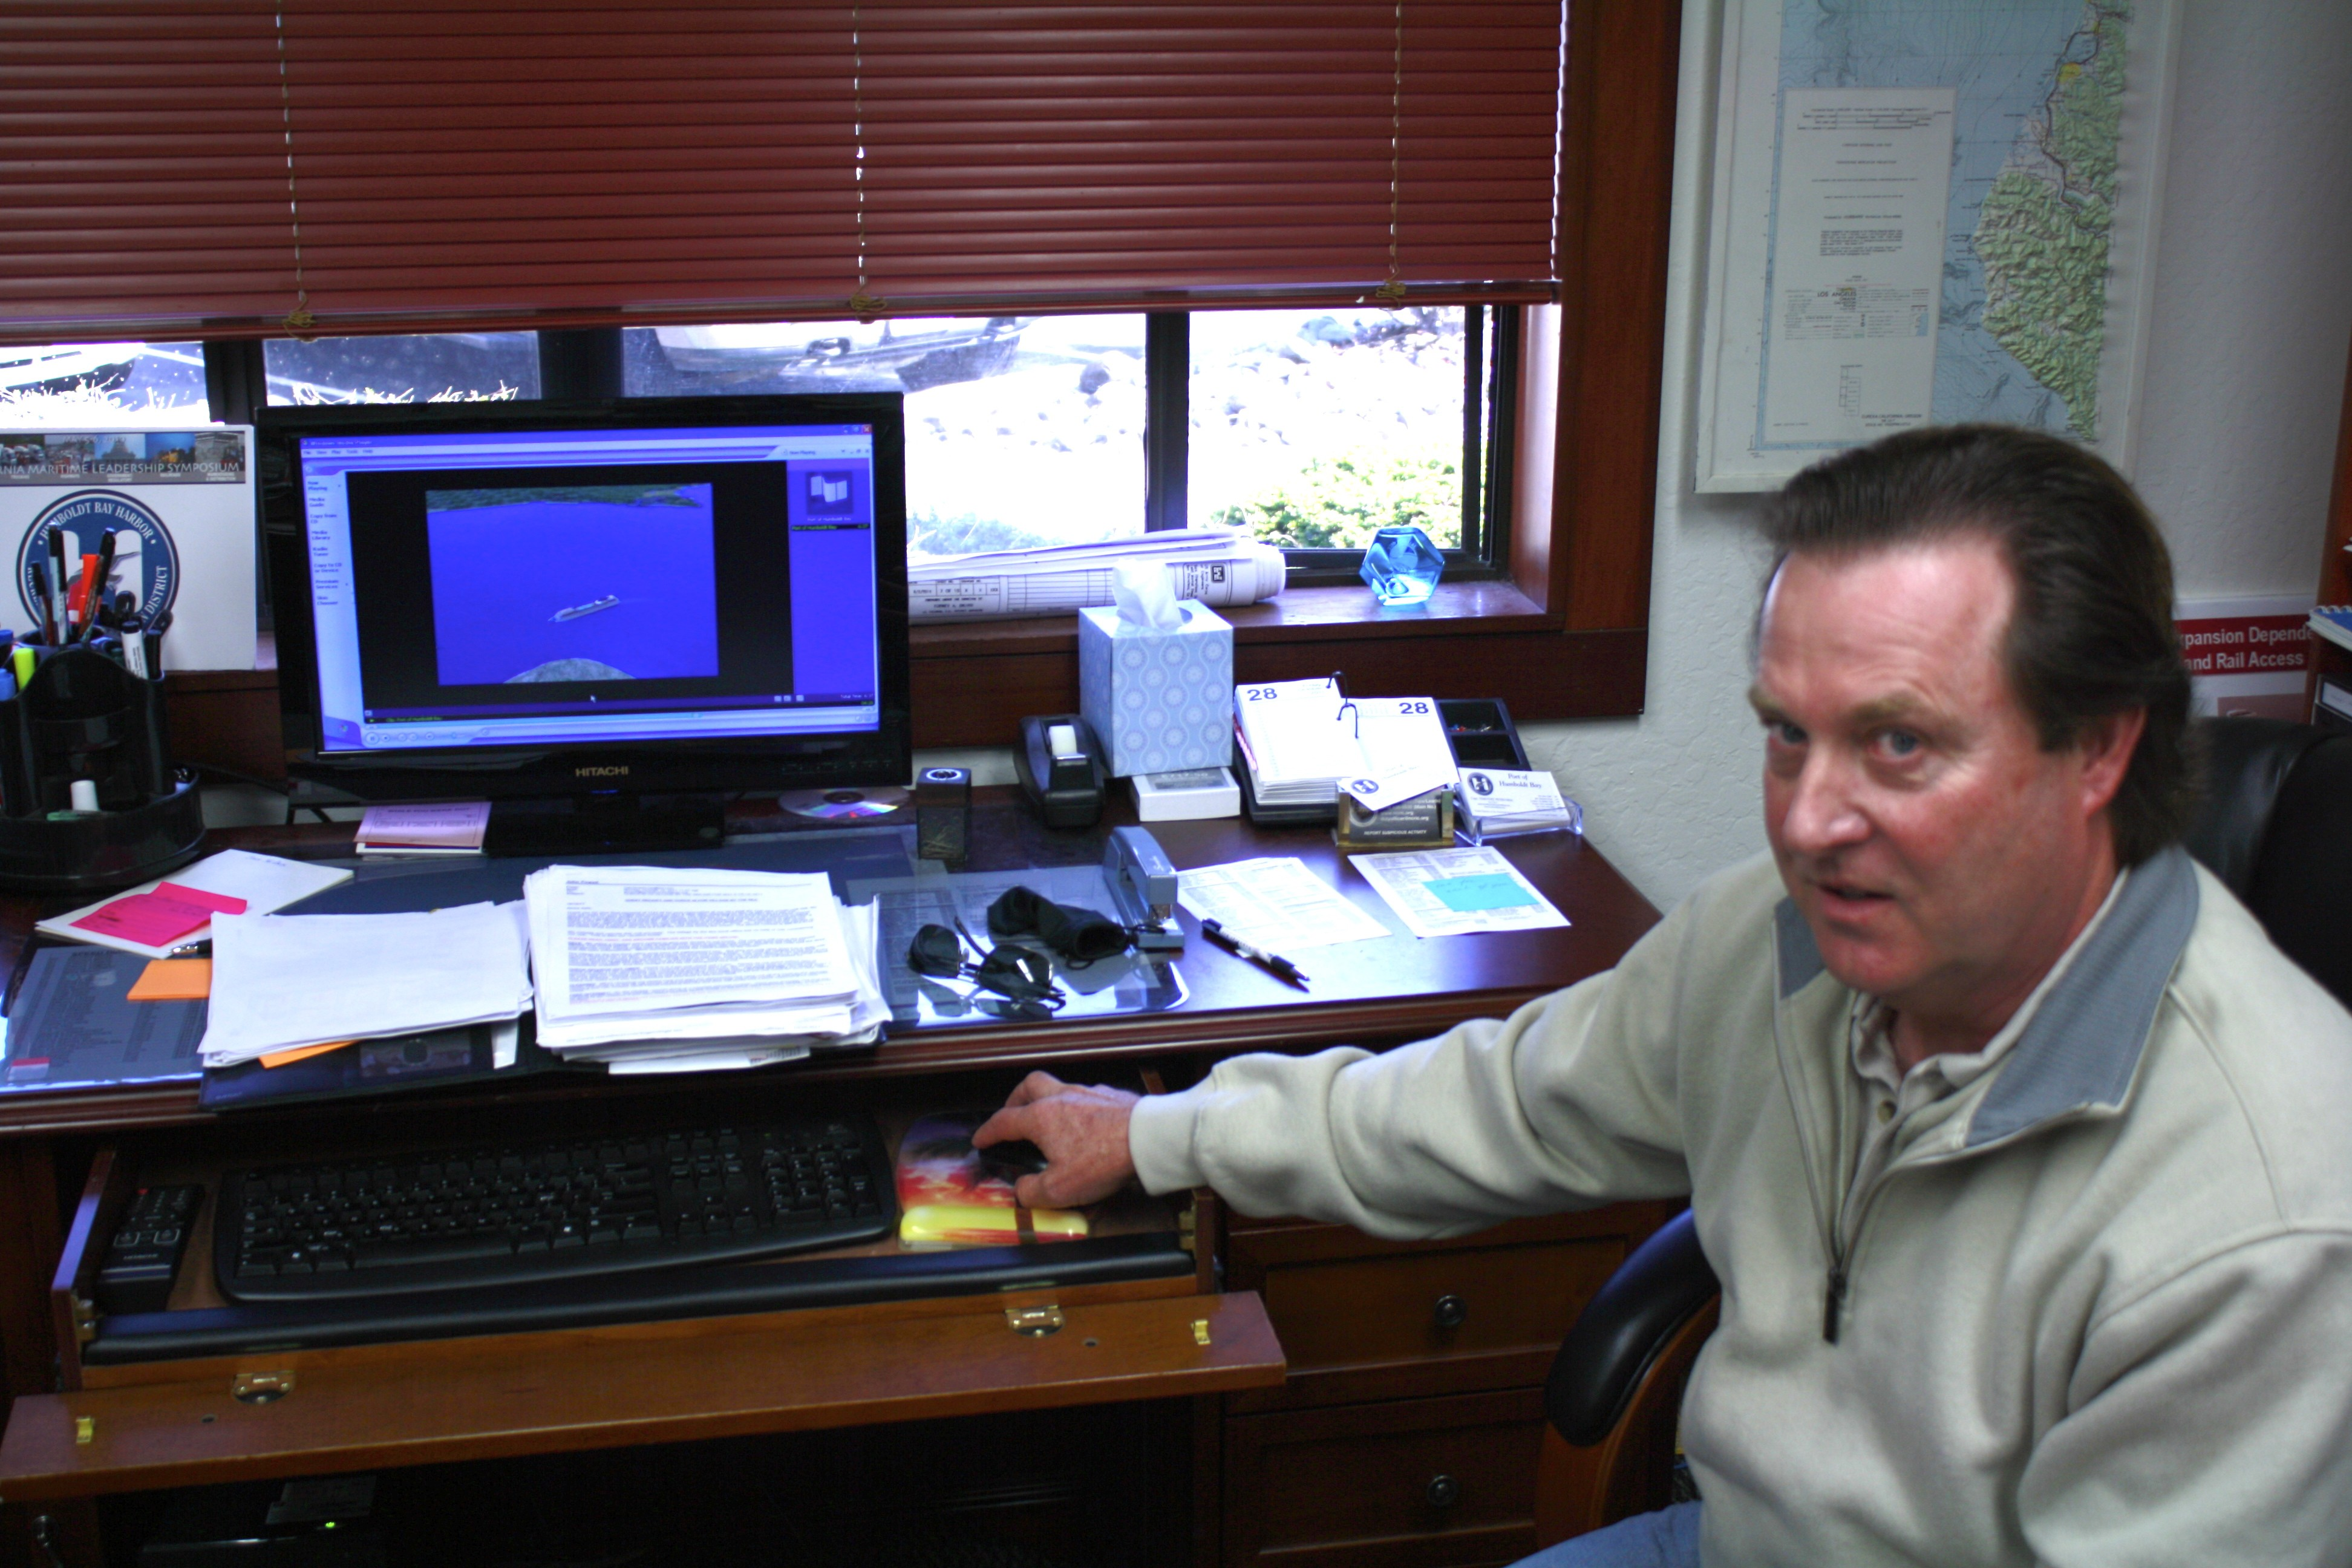 Captain John Powell spends more time than he'd like his desk. His computer is running an educational simulation he helped create, of a ship entering Humboldt Bay. - PHOTO BY ZACH ST. GEORGE